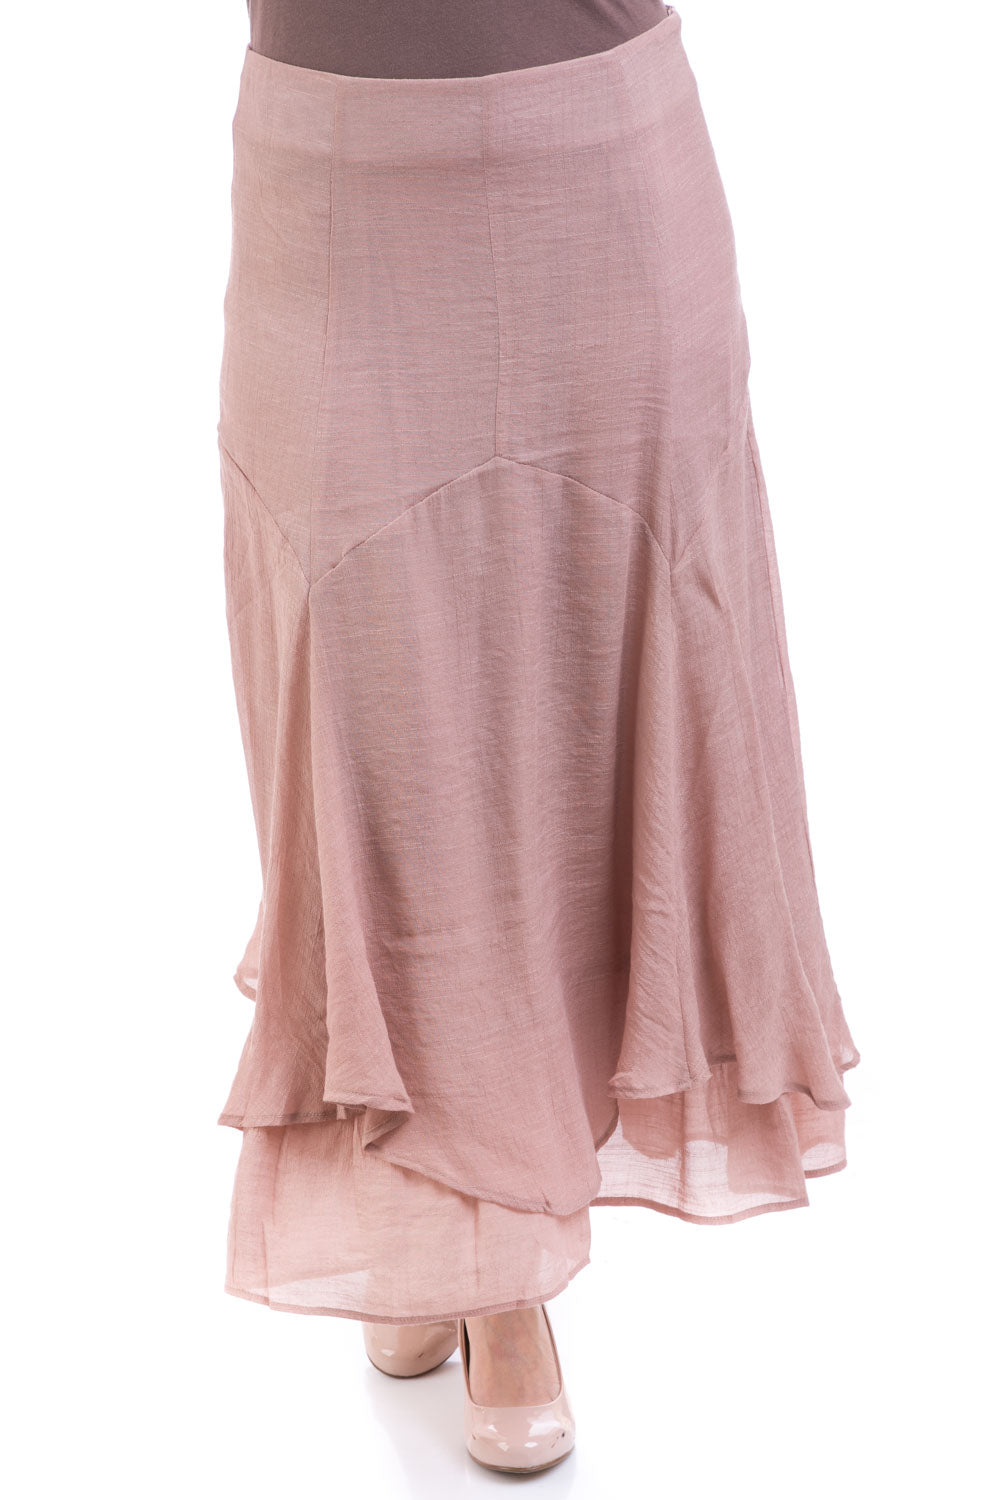 Type 2 Graceful Rose Skirt